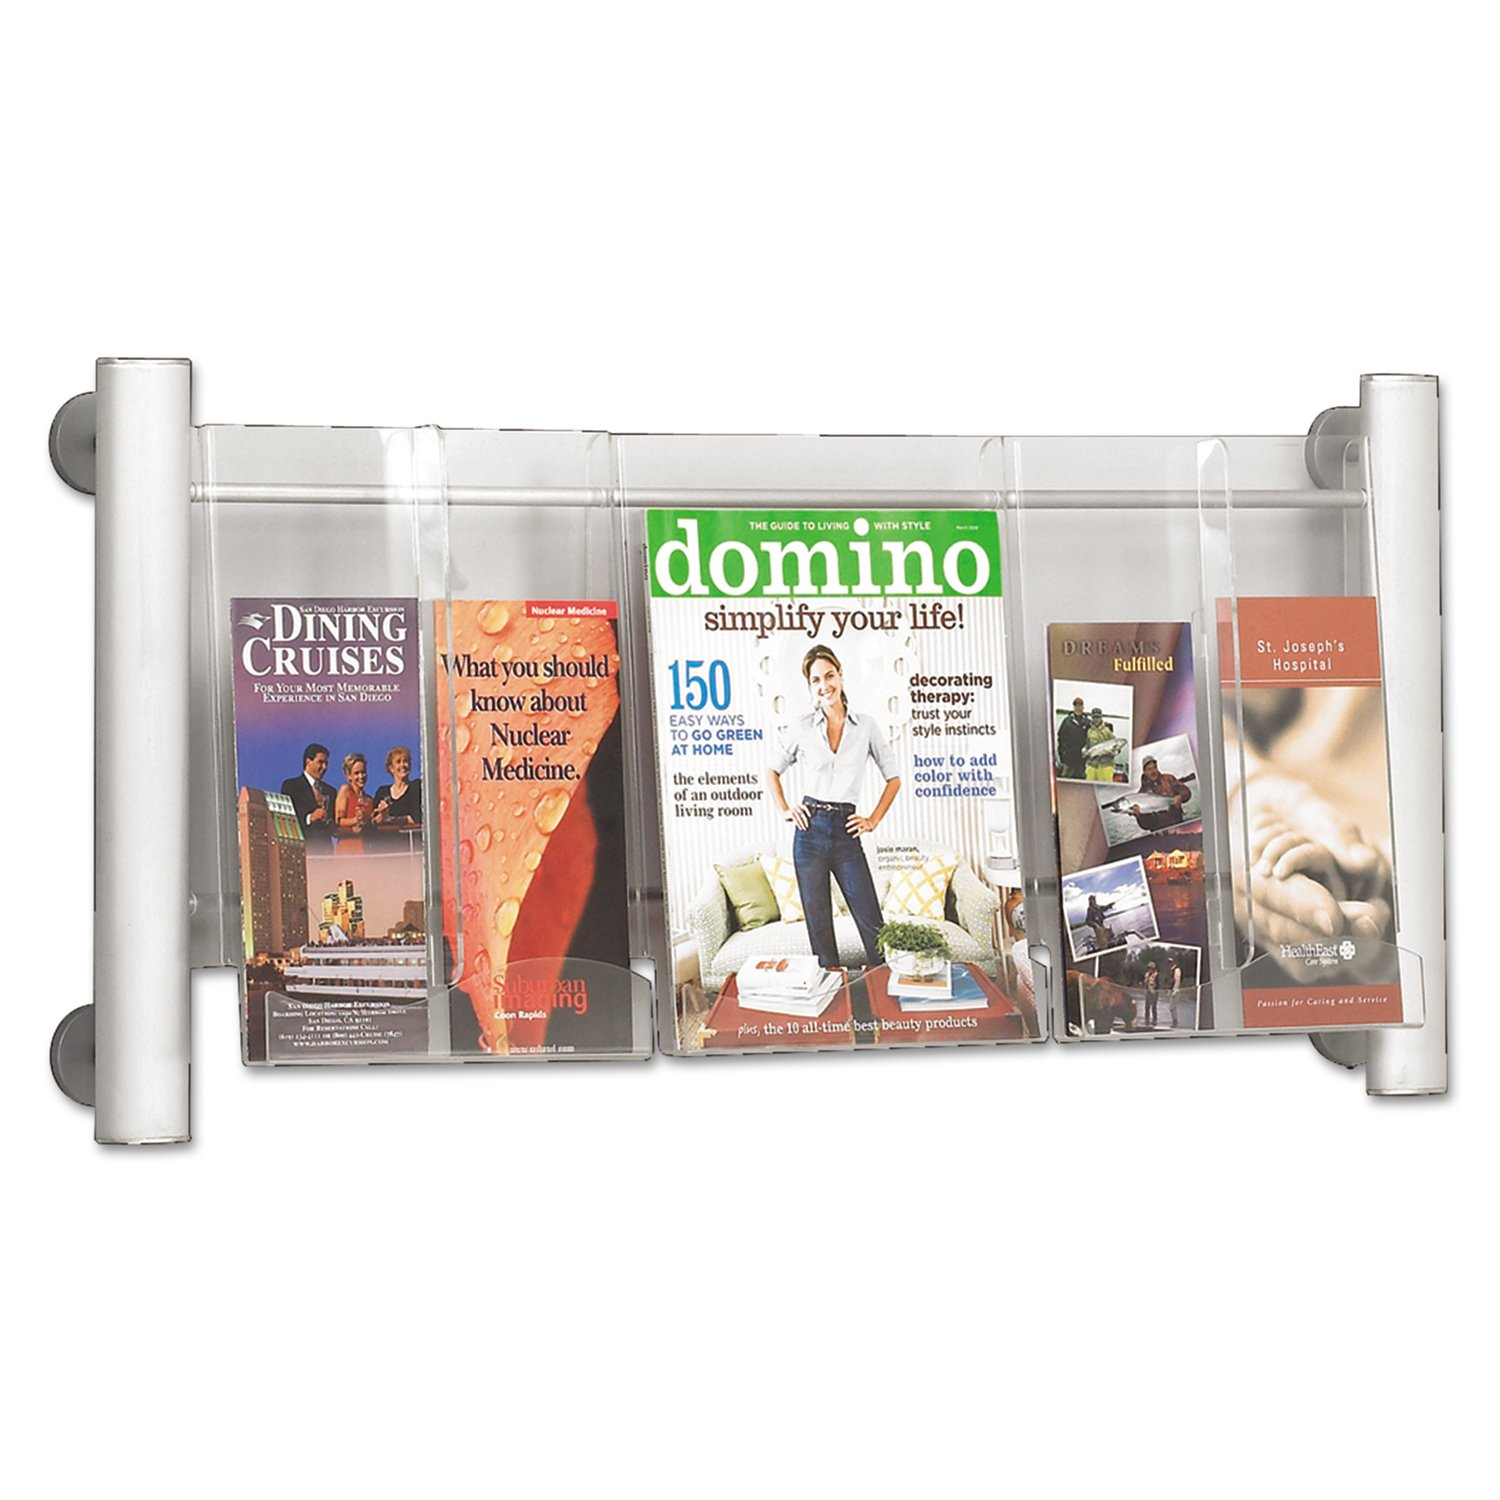 Safco Luxe Magazine Rack, 9 Pocket (4134SL) Safco Luxe Magazine Rack Safco Products